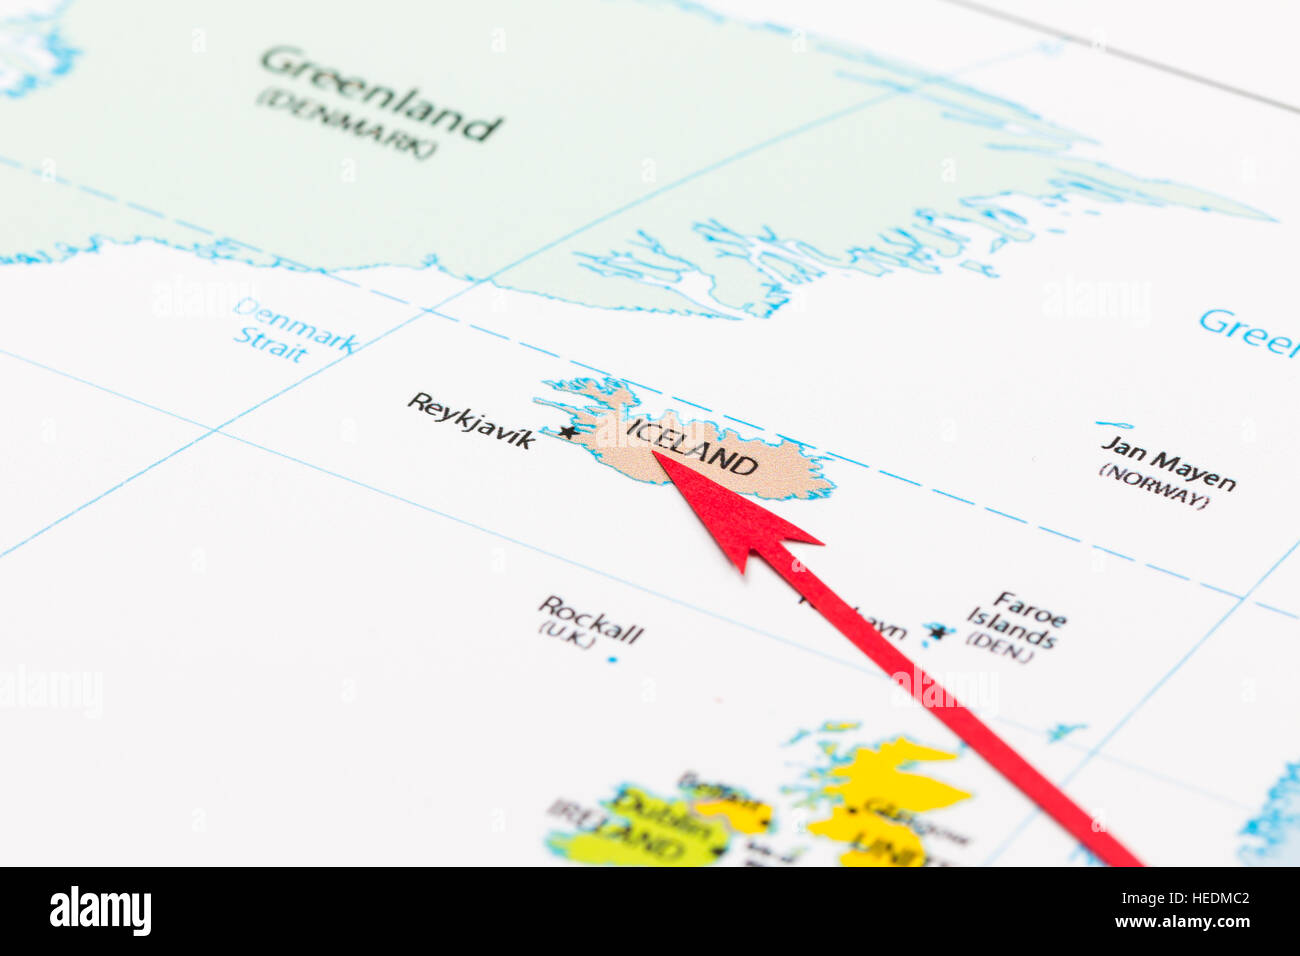 Red arrow pointing Iceland on the map of Europe continent ... on iceland mountains map, iceland map by christiane engel, iceland scandinavia europe, iceland map black and white, iceland physical map, iceland on globe, iceland flag, iceland map with map key, iceland travel, iceland country map, iceland road map, iceland map with volcanoes, iceland global map, world map, iceland topographic map,